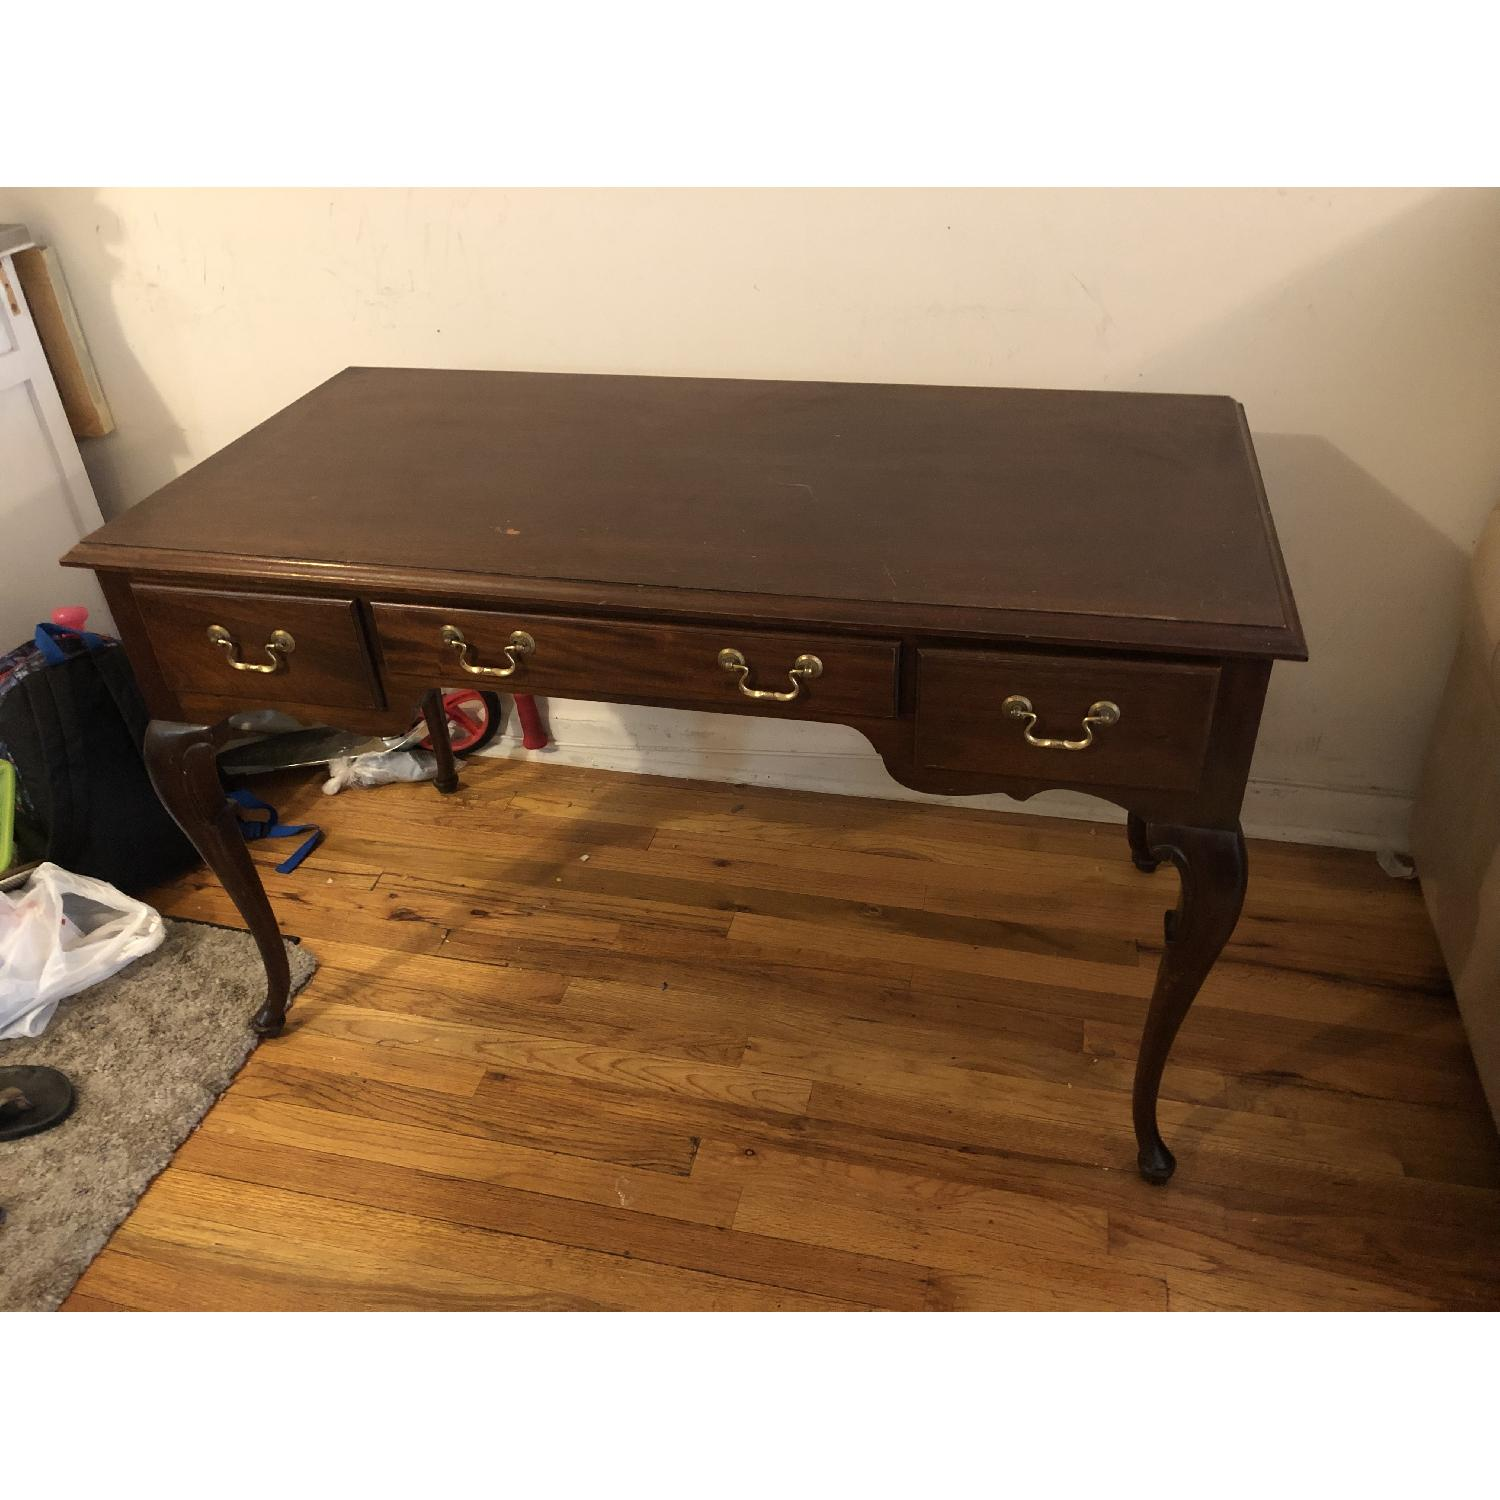 Antique Mahogany Wood Desk - image-1